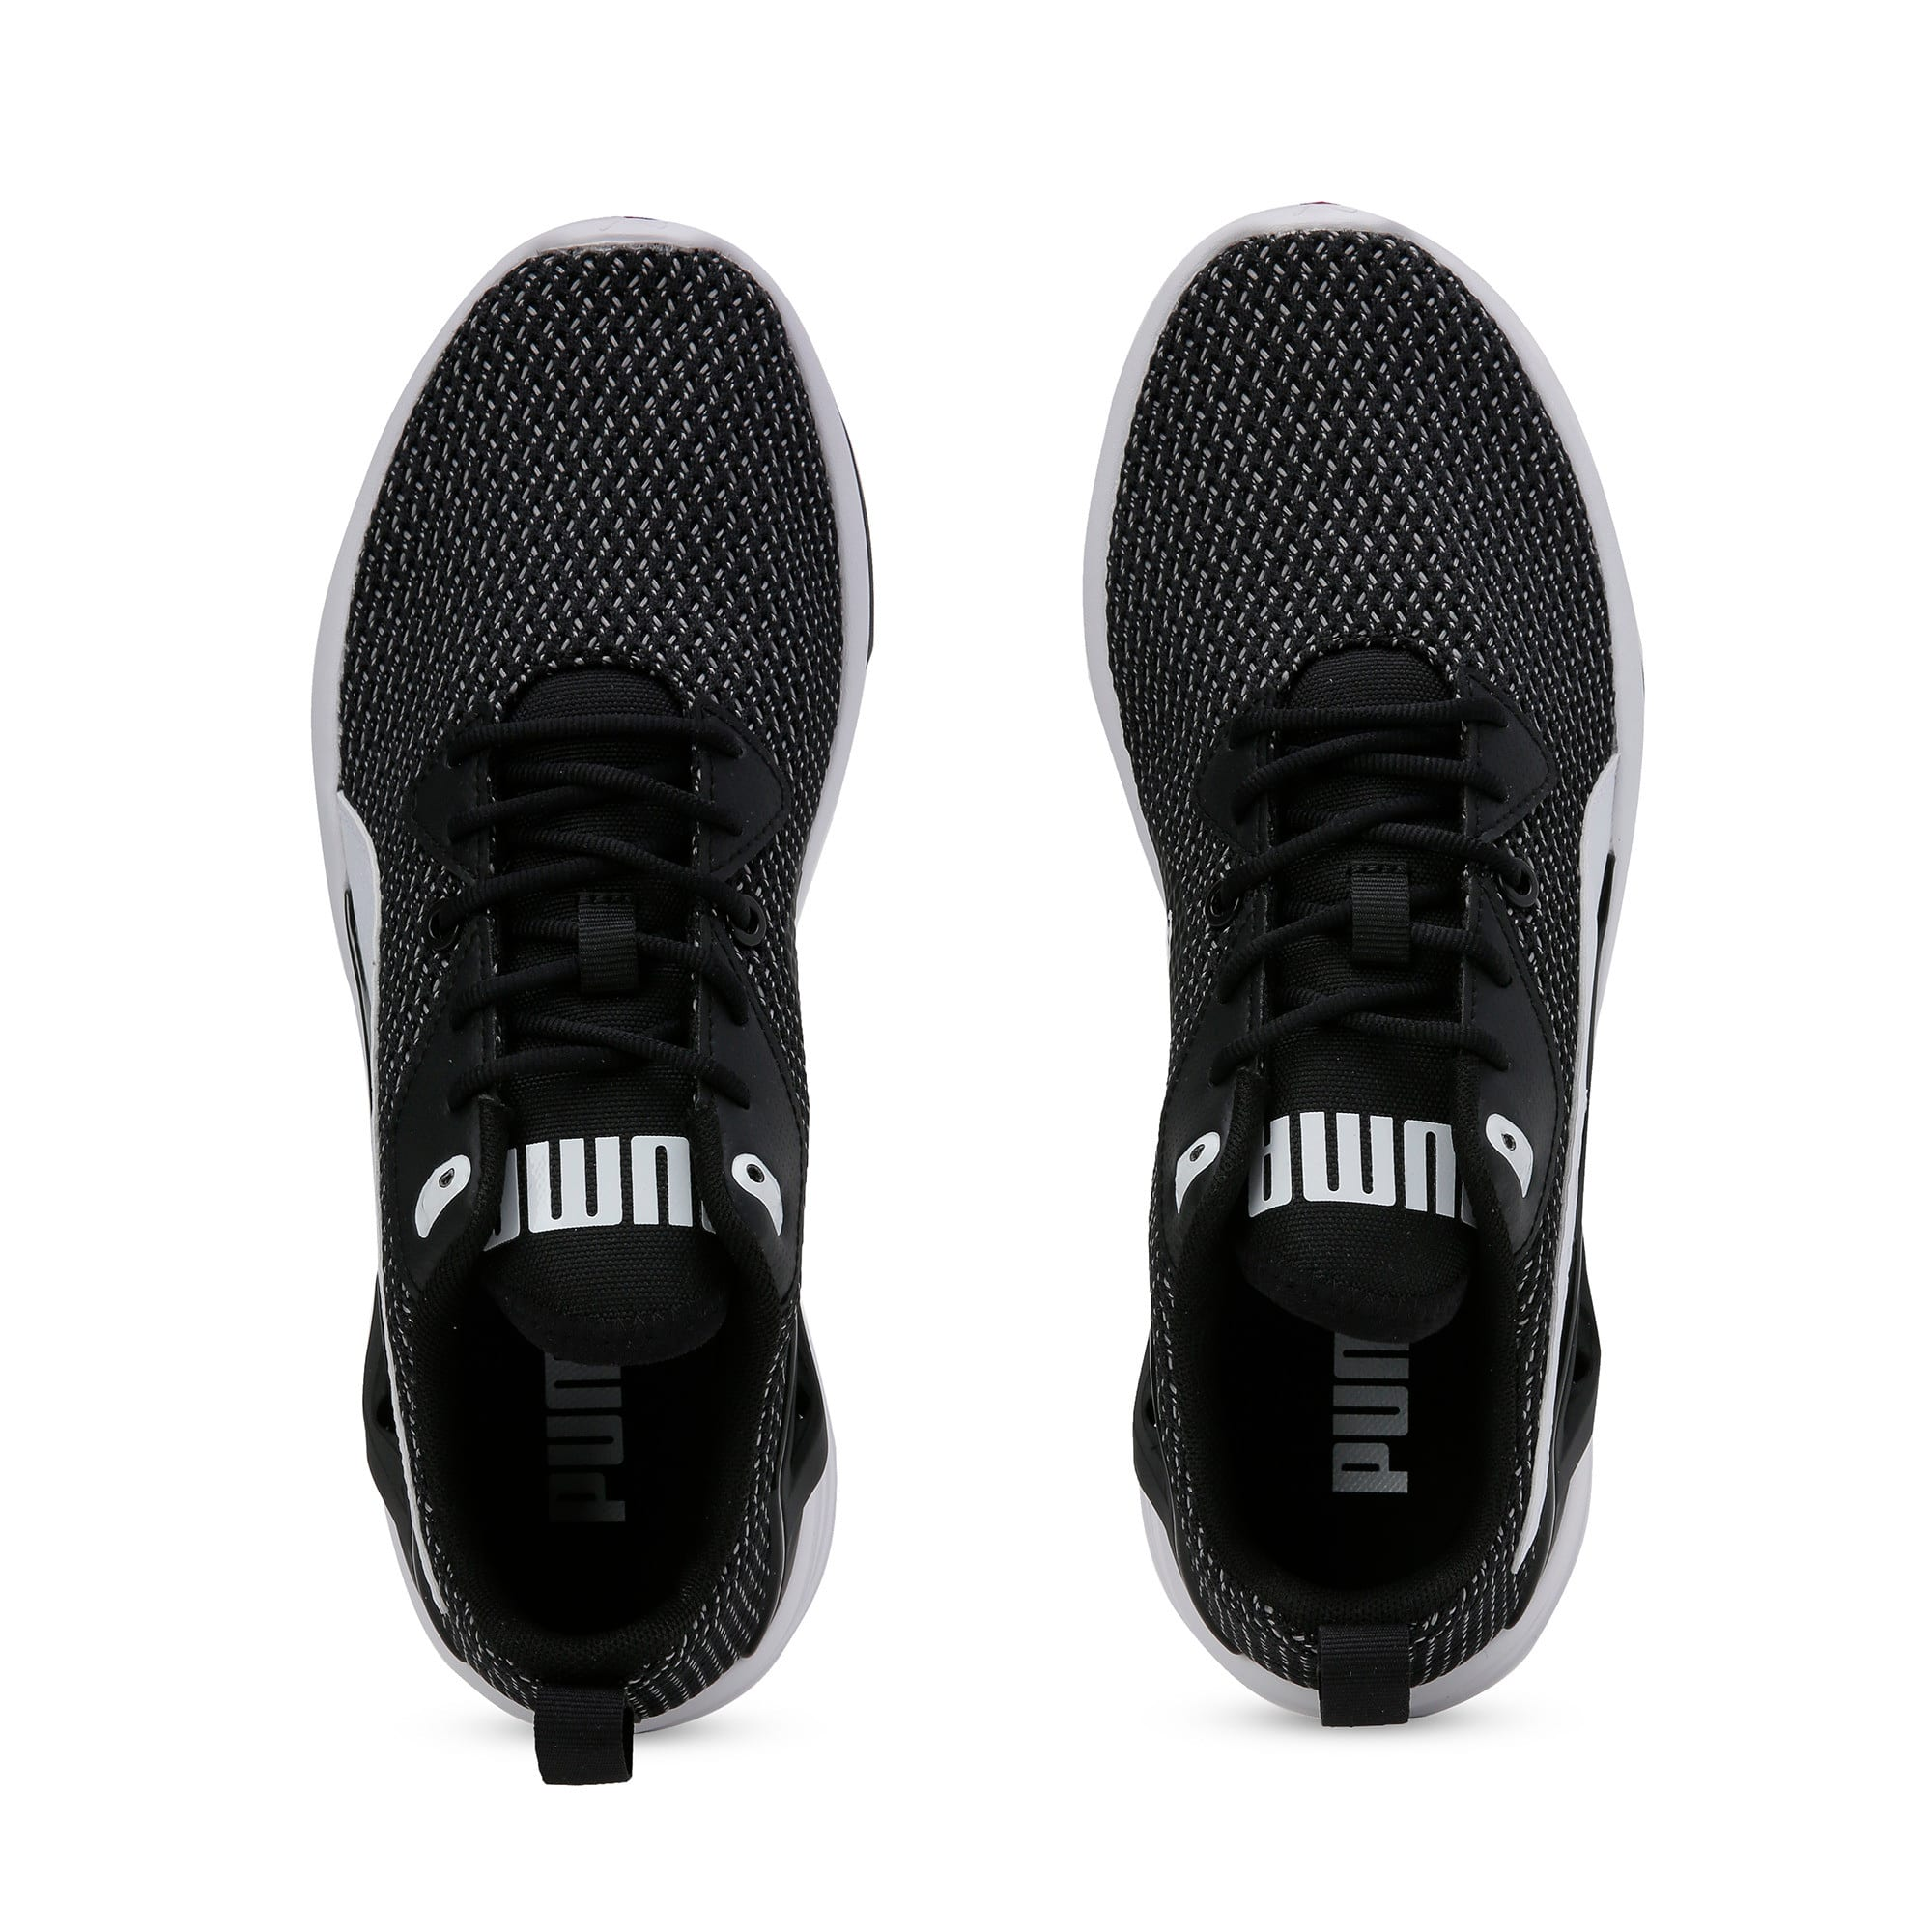 Thumbnail 8 of Aura XT Men's Trainers, Puma Black-Puma White, medium-IND